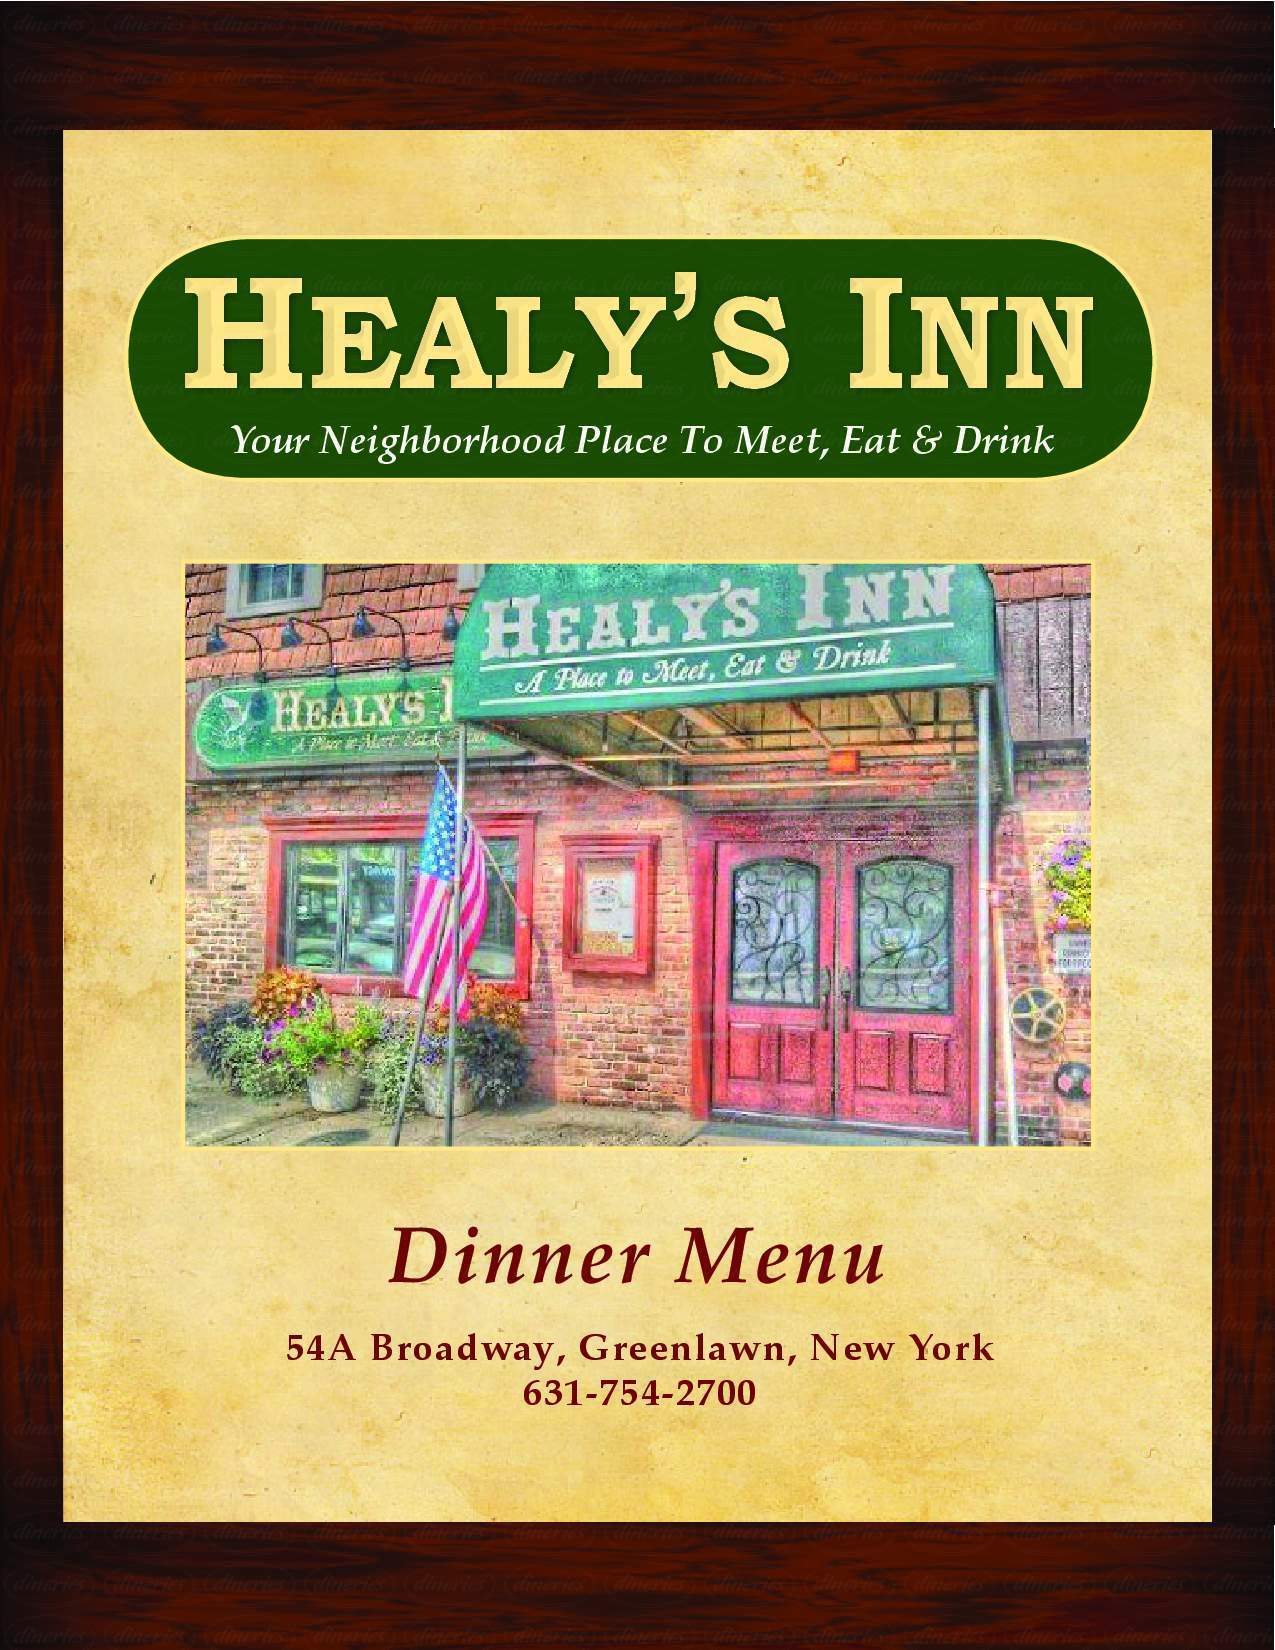 menu for Healy's Inn